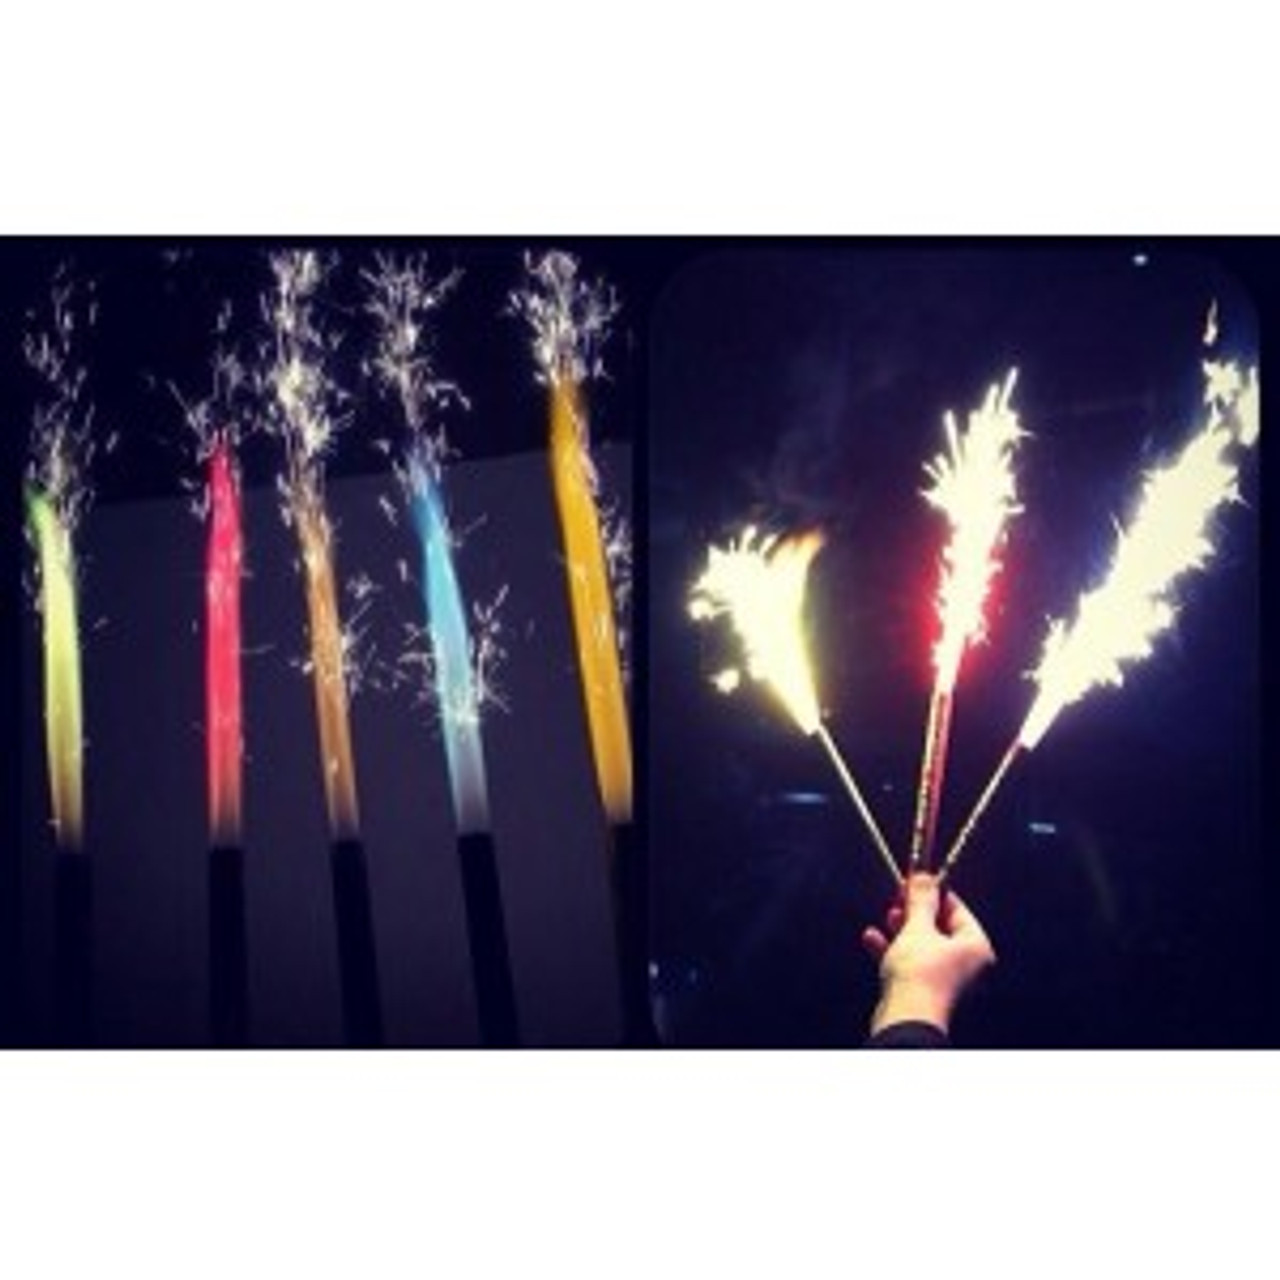 color, blue, red, green, gold, orange, purple, champagne, Bottle, Sparkler